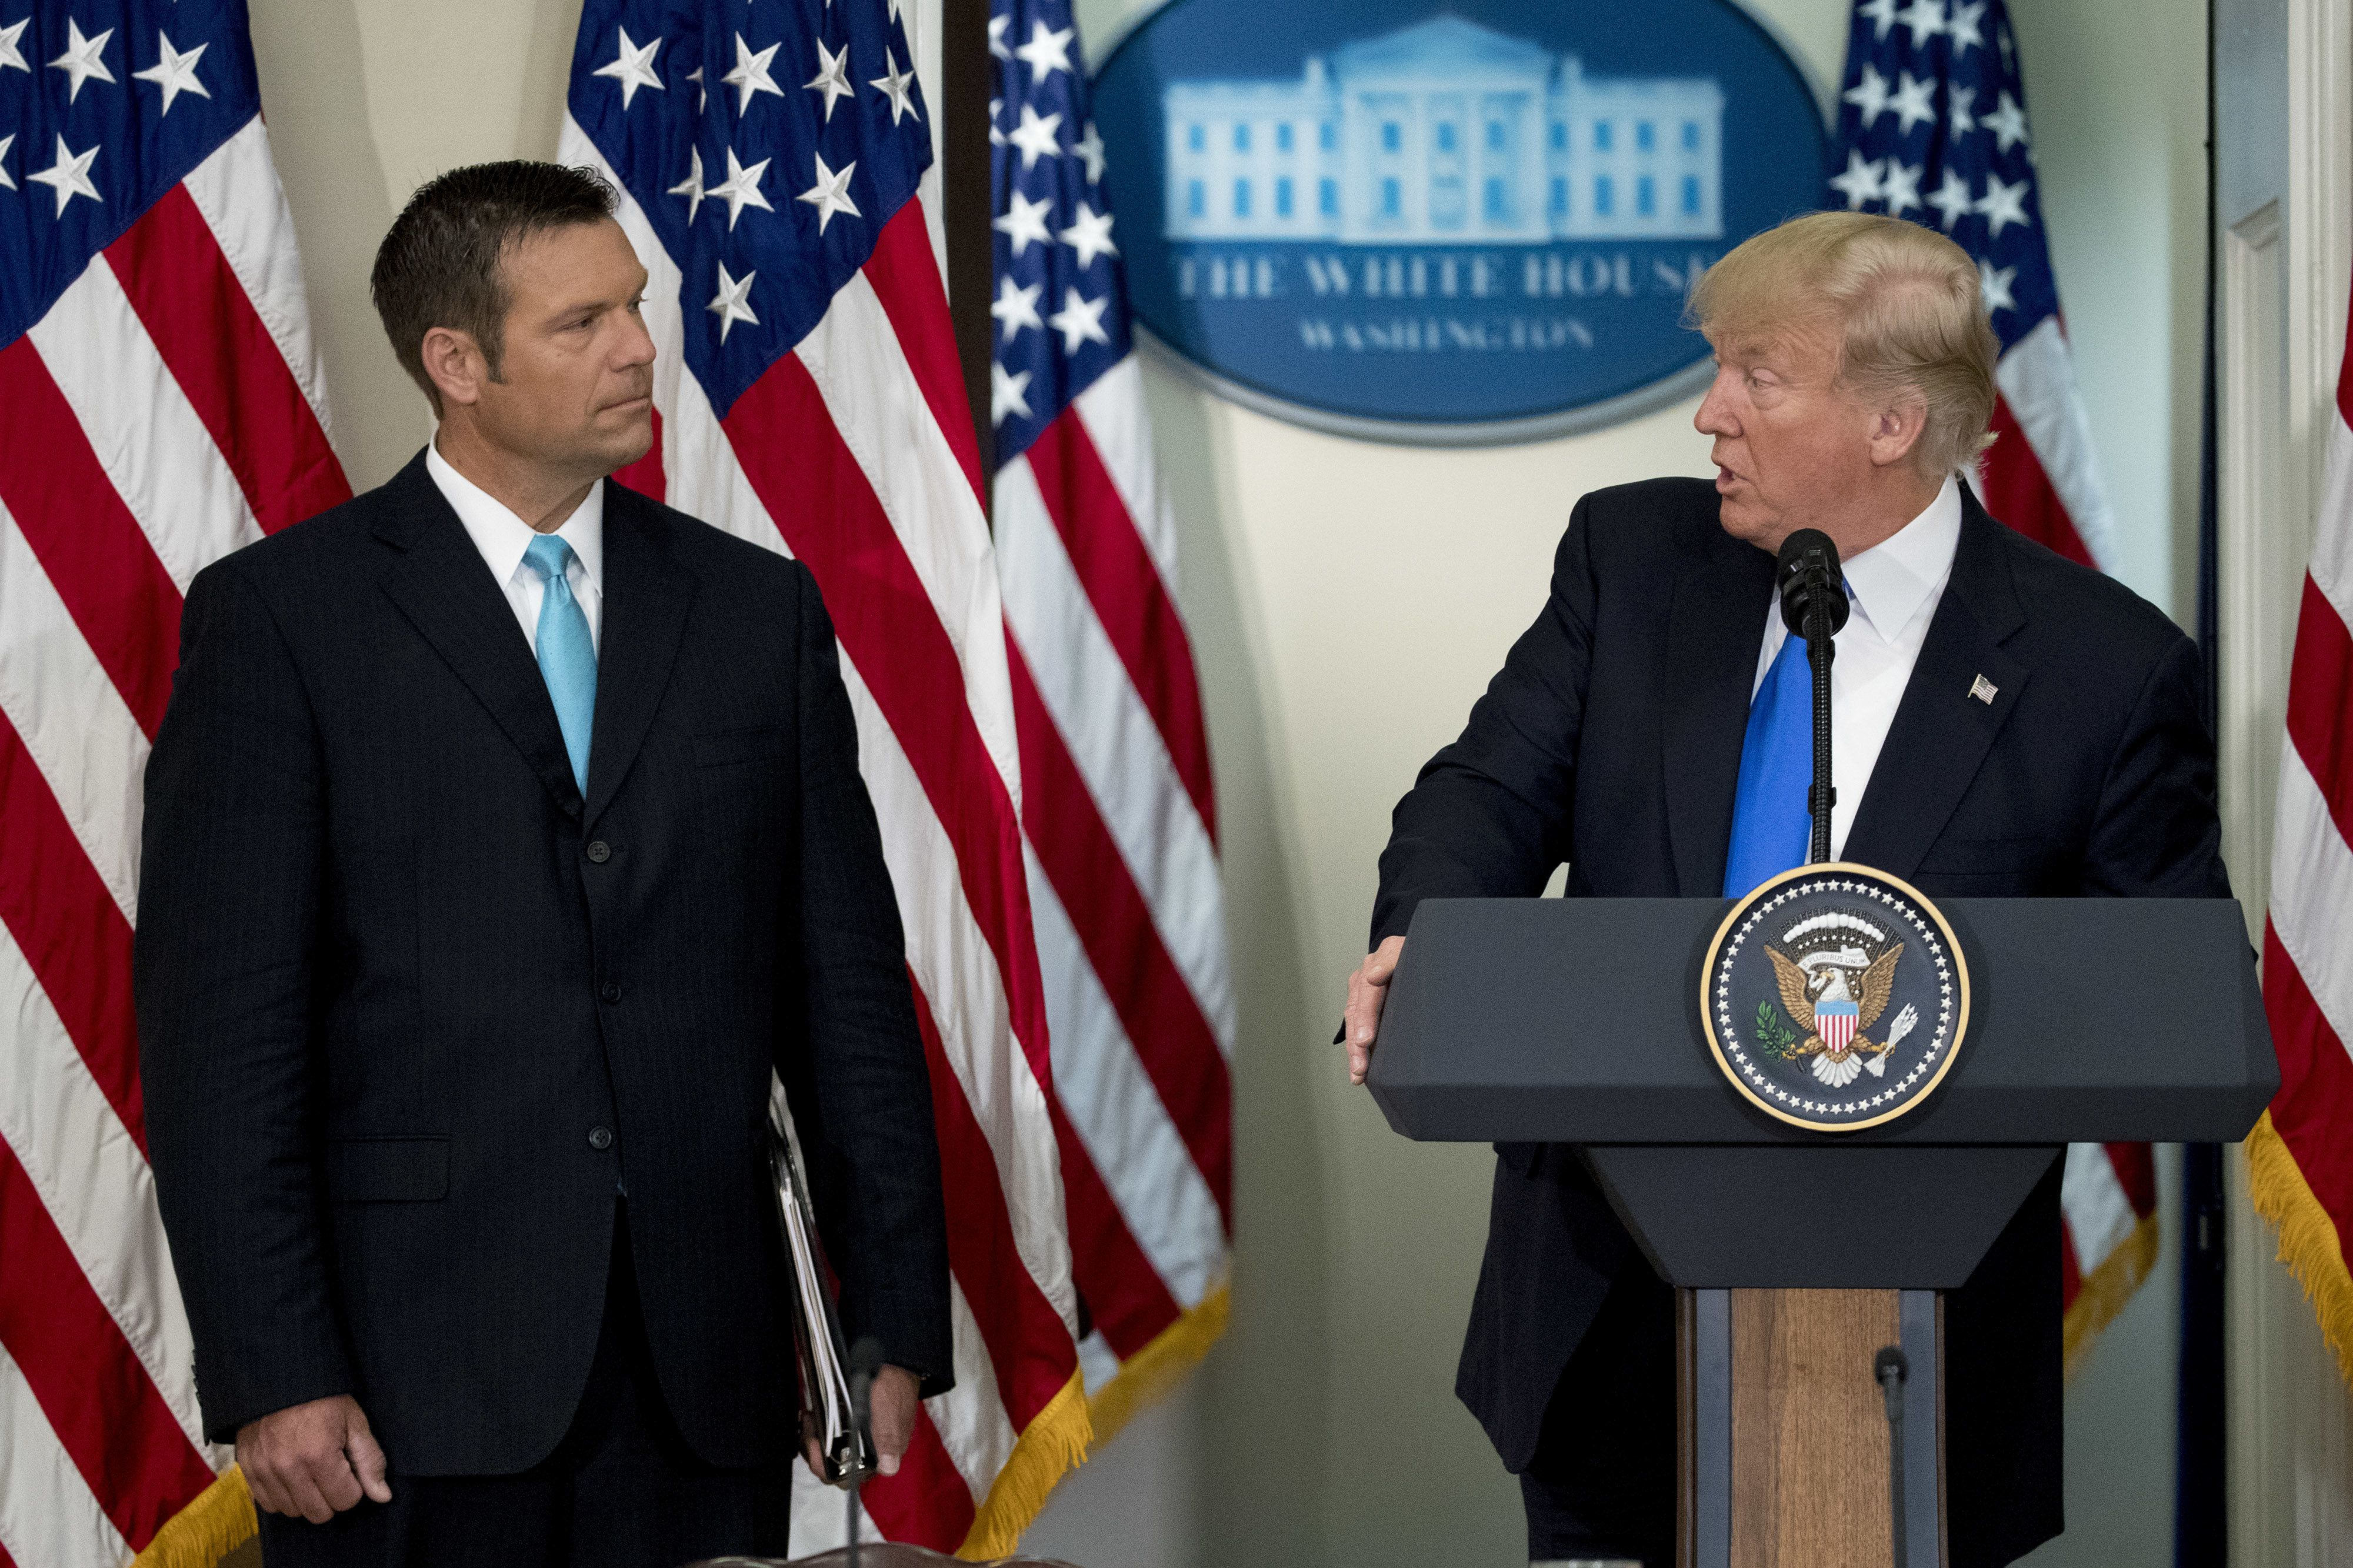 U.S. President Donald Trump speaks as Kris Kobach, Kansass secretary of state, left, listens during the initial meeting of the Presidential Advisory Commission on Election Integrity at the Eisenhower Executive Office Building in Washington, D.C., U.S., on Wednesday, July 19, 2017. Trump created the advisory commission in May, after claiming without evidence that 3 million people or more illegally voted for Hillary Clinton last year. Photographer: Andrew Harrer/Bloomberg via Getty Images